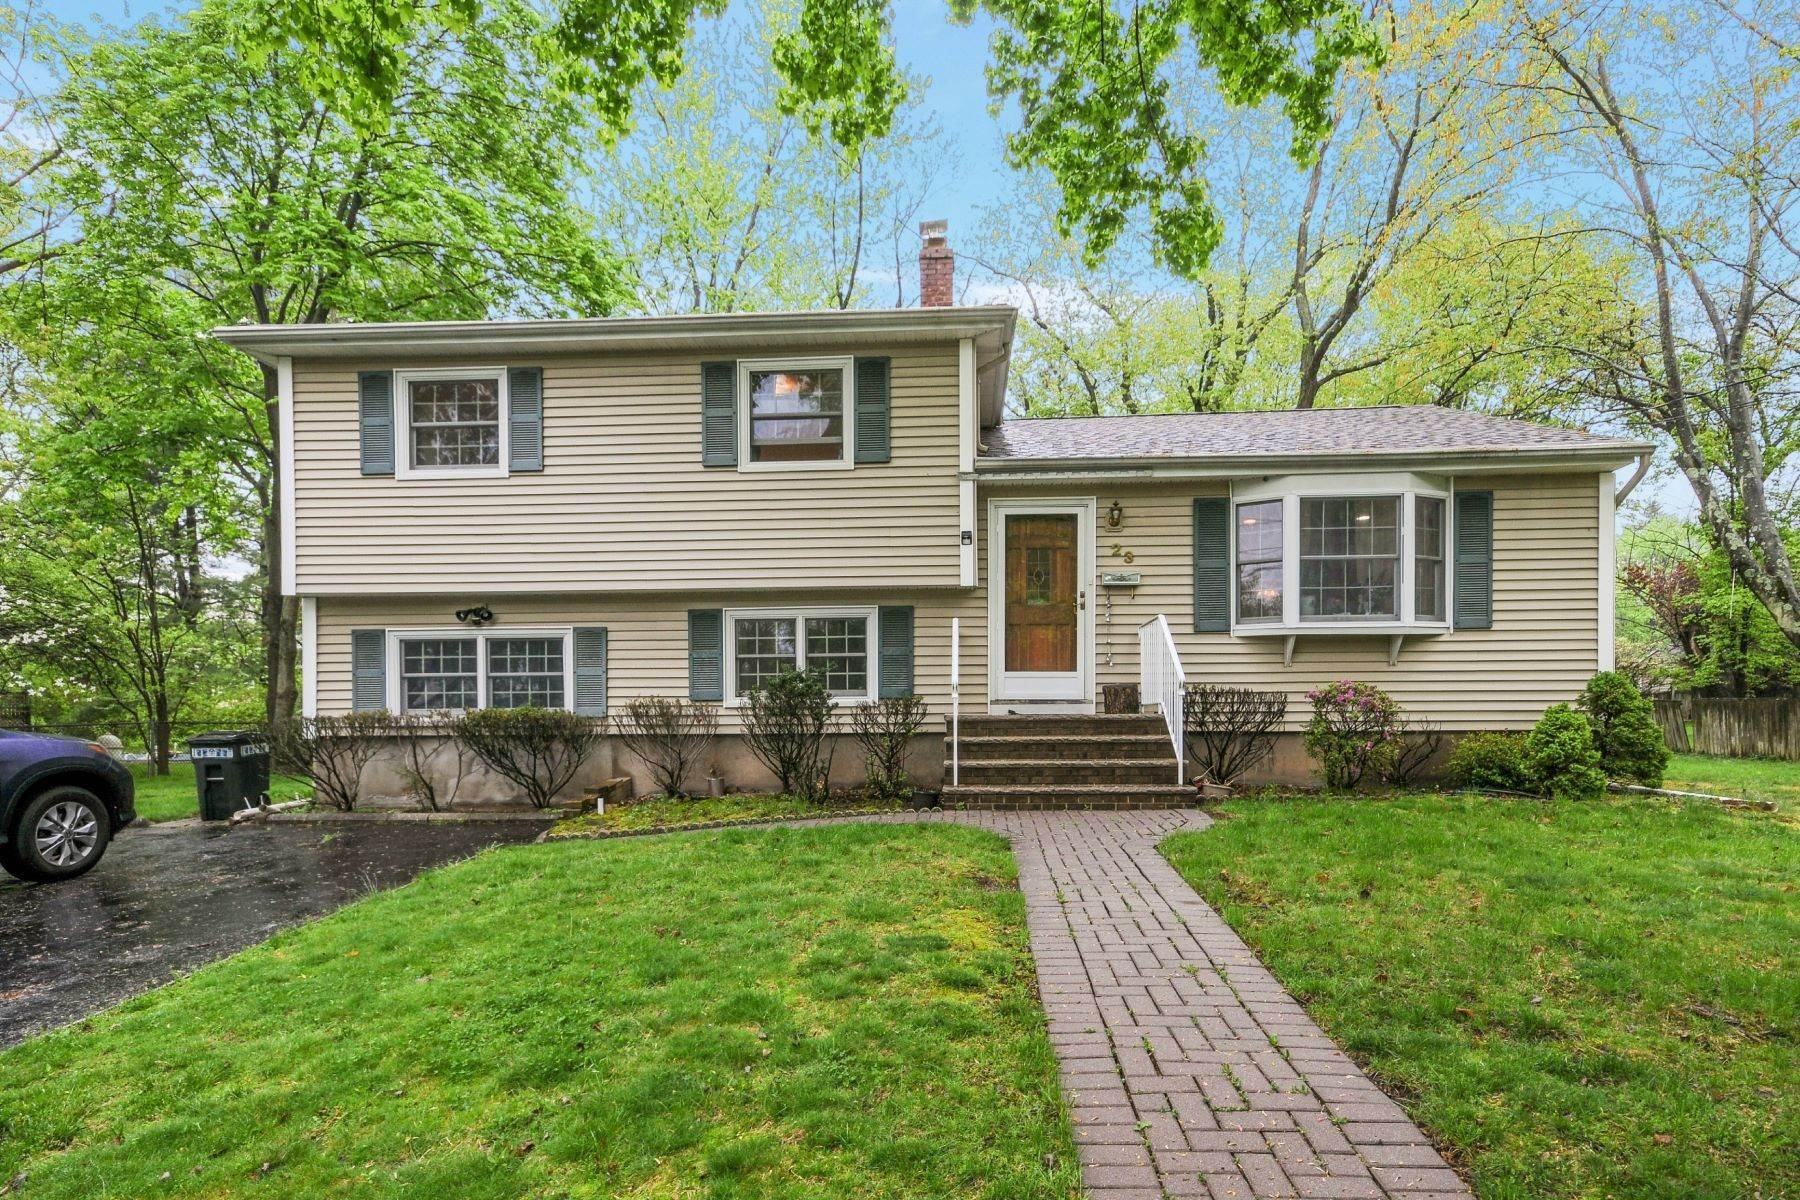 Single Family Homes for Sale at Renovated Split in Closter 23 Asmus Rd Closter, New Jersey 07624 United States